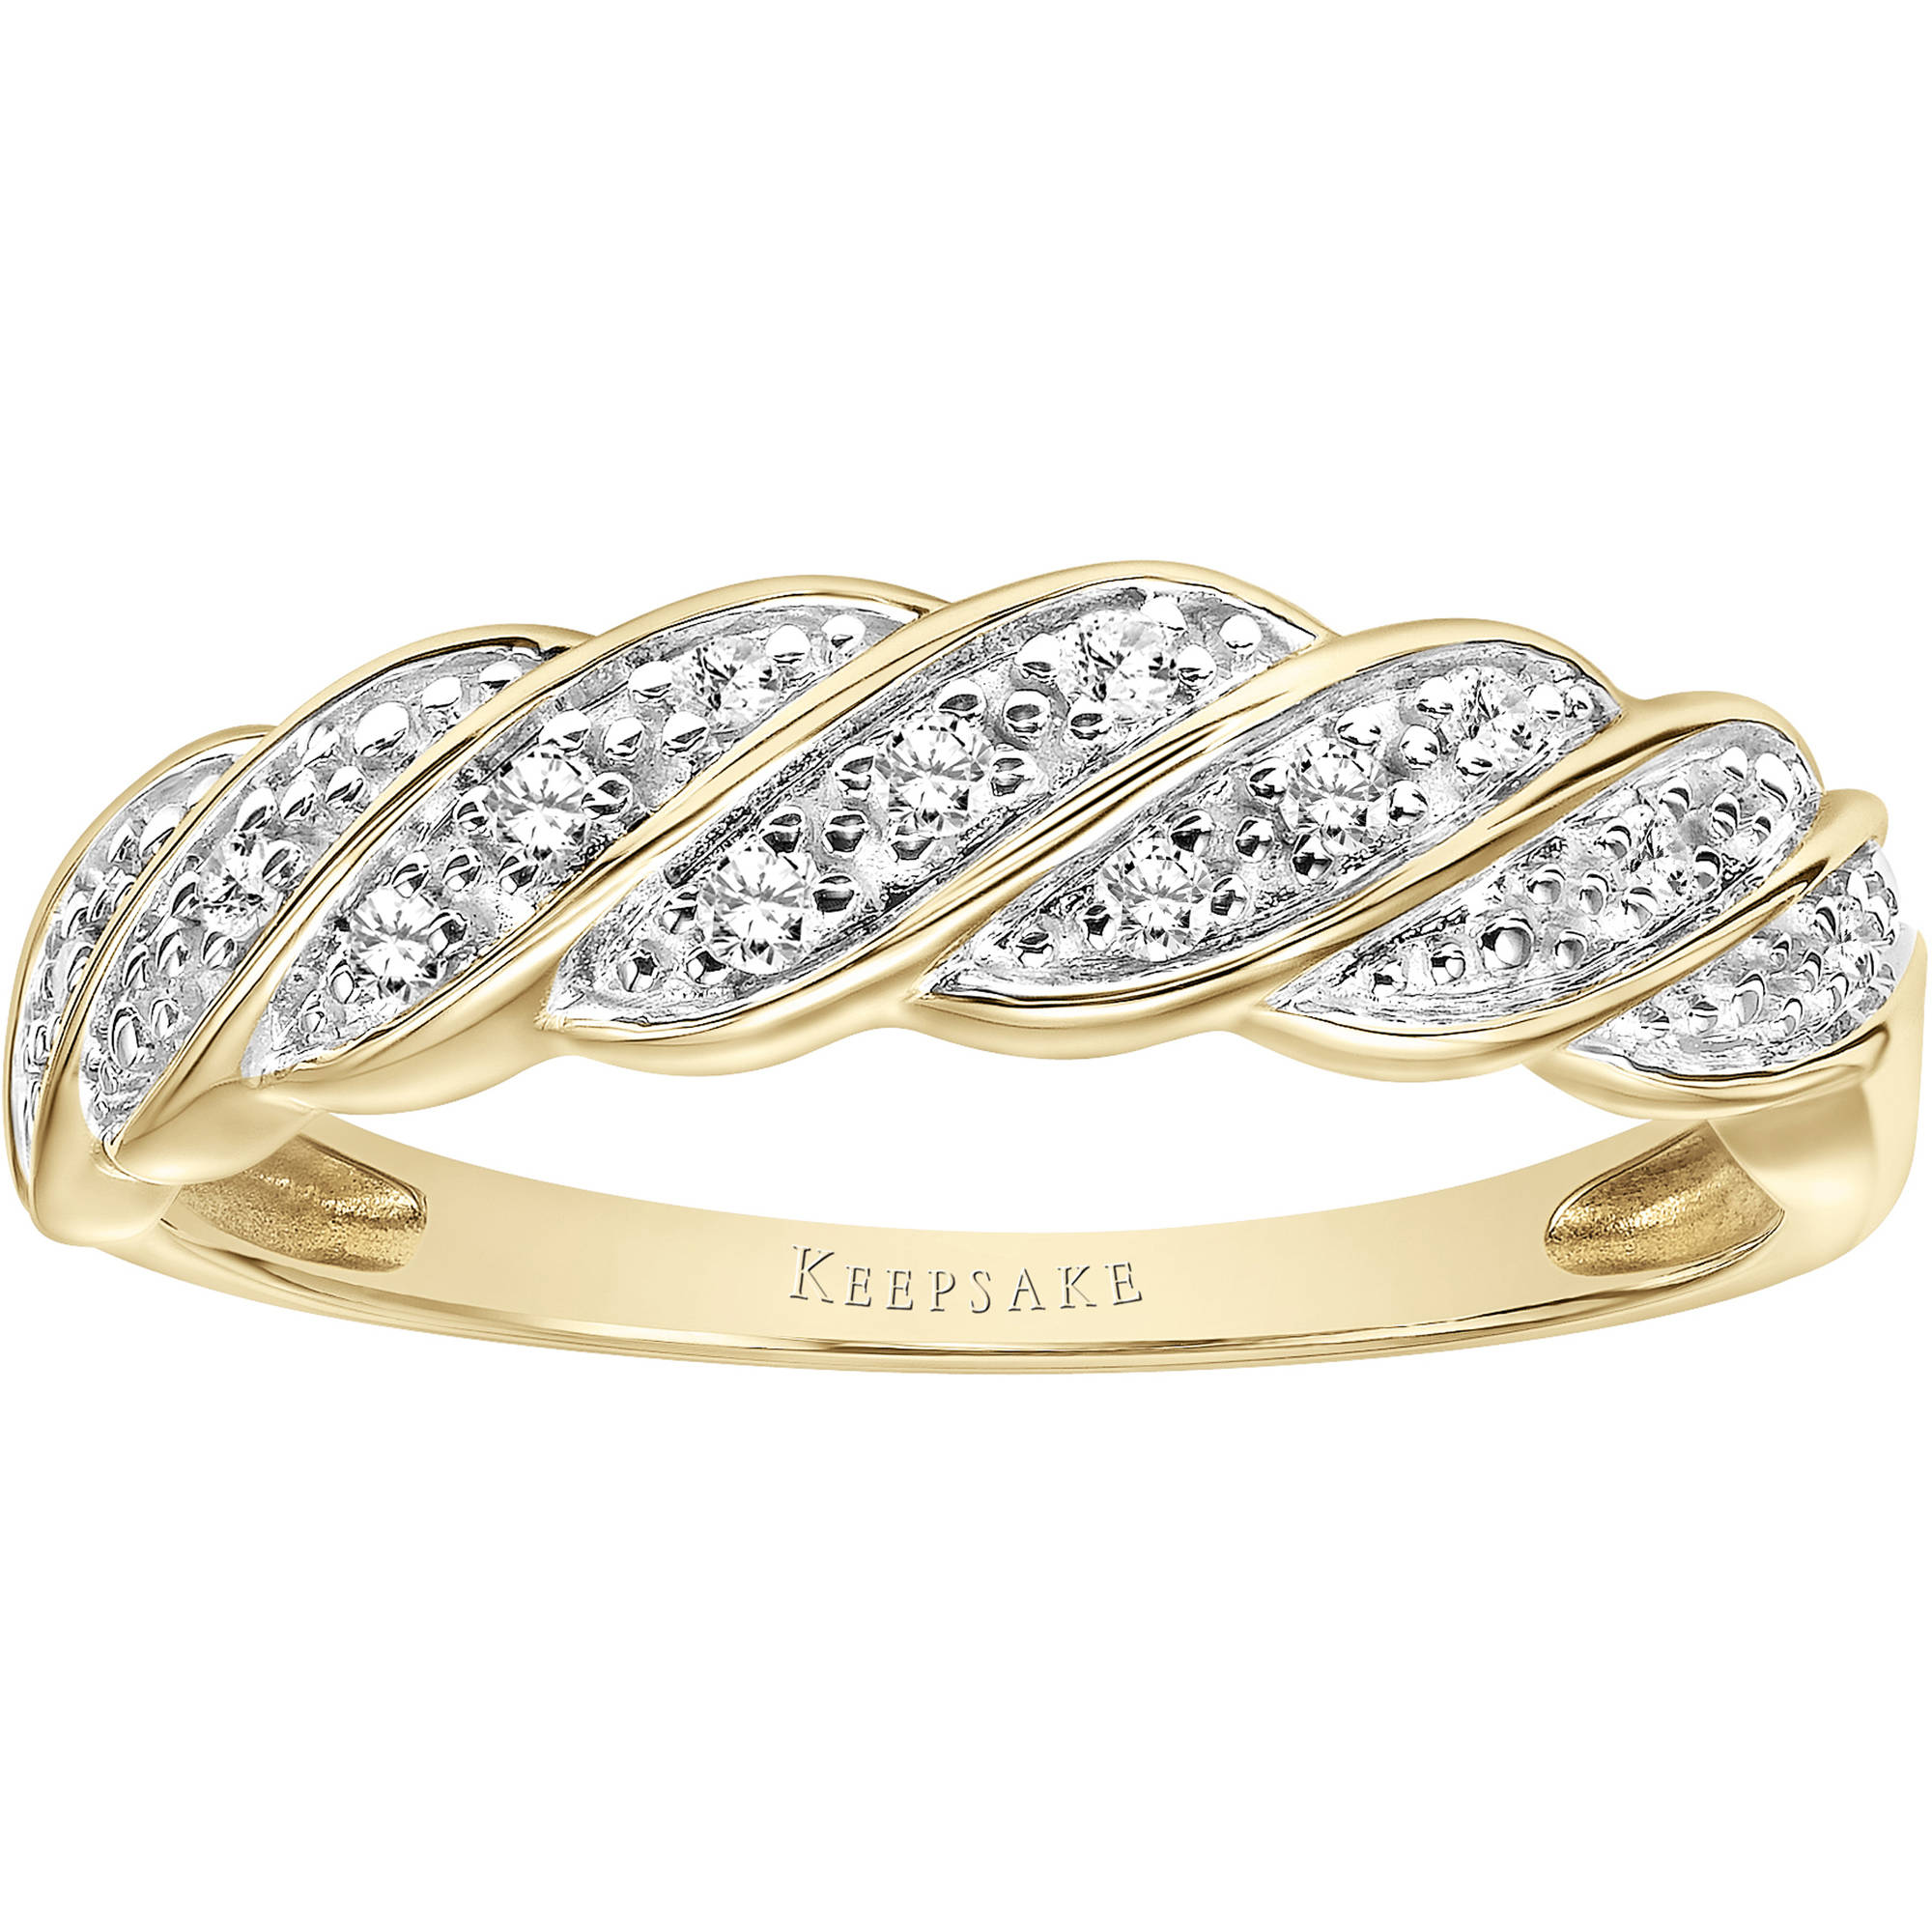 Keepsake Eternal 1/10 Carat T.W. Certified Diamond 10kt Yellow Gold Band